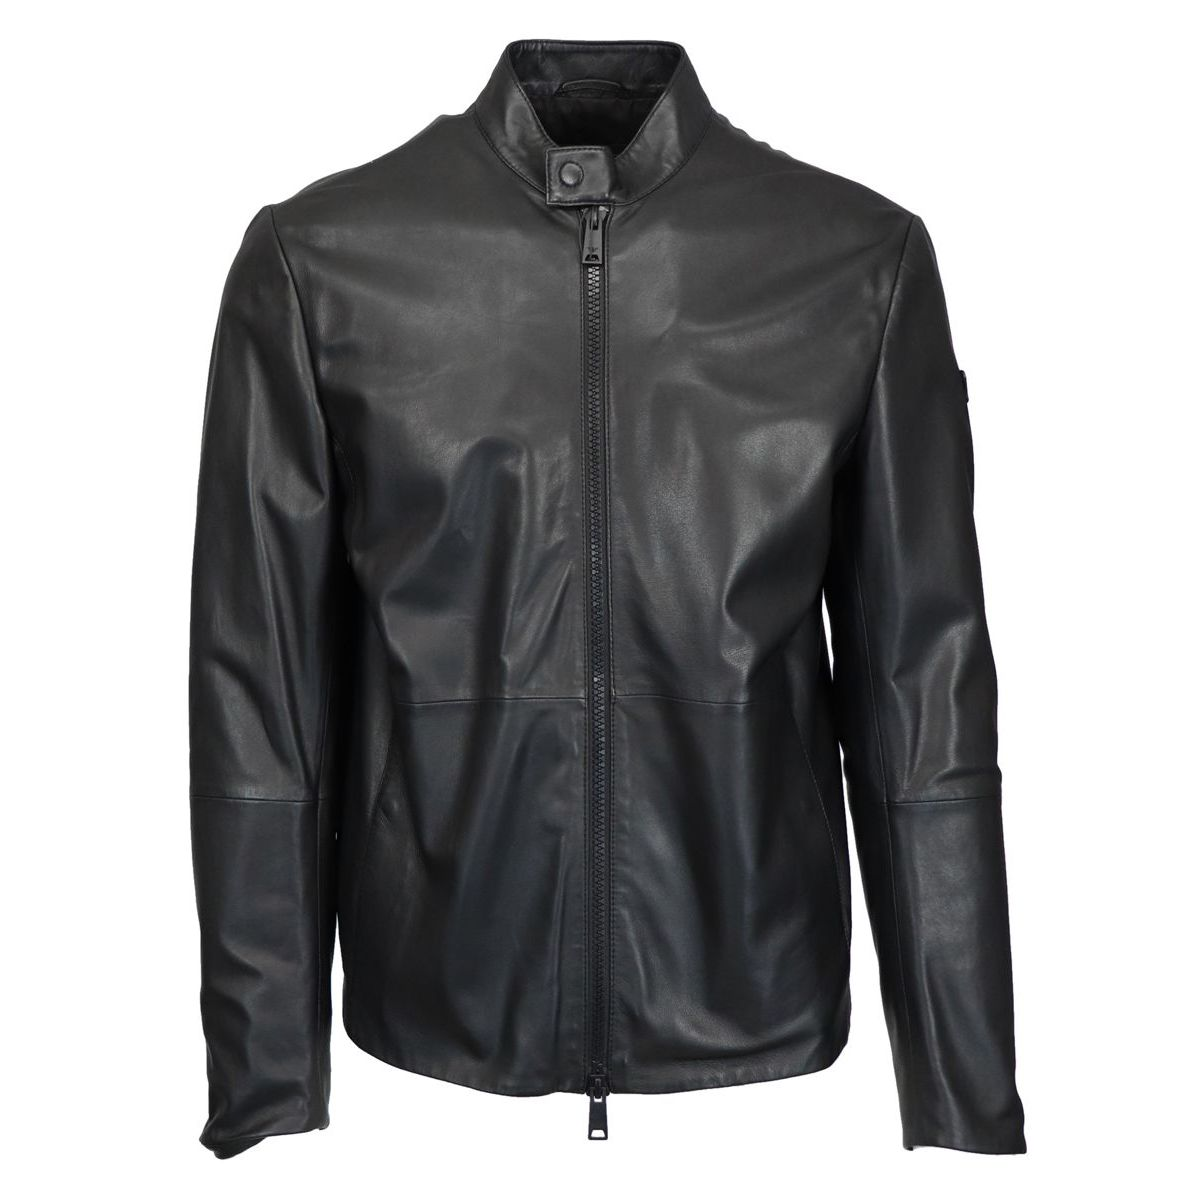 Full zip leather jacket Black Emporio Armani